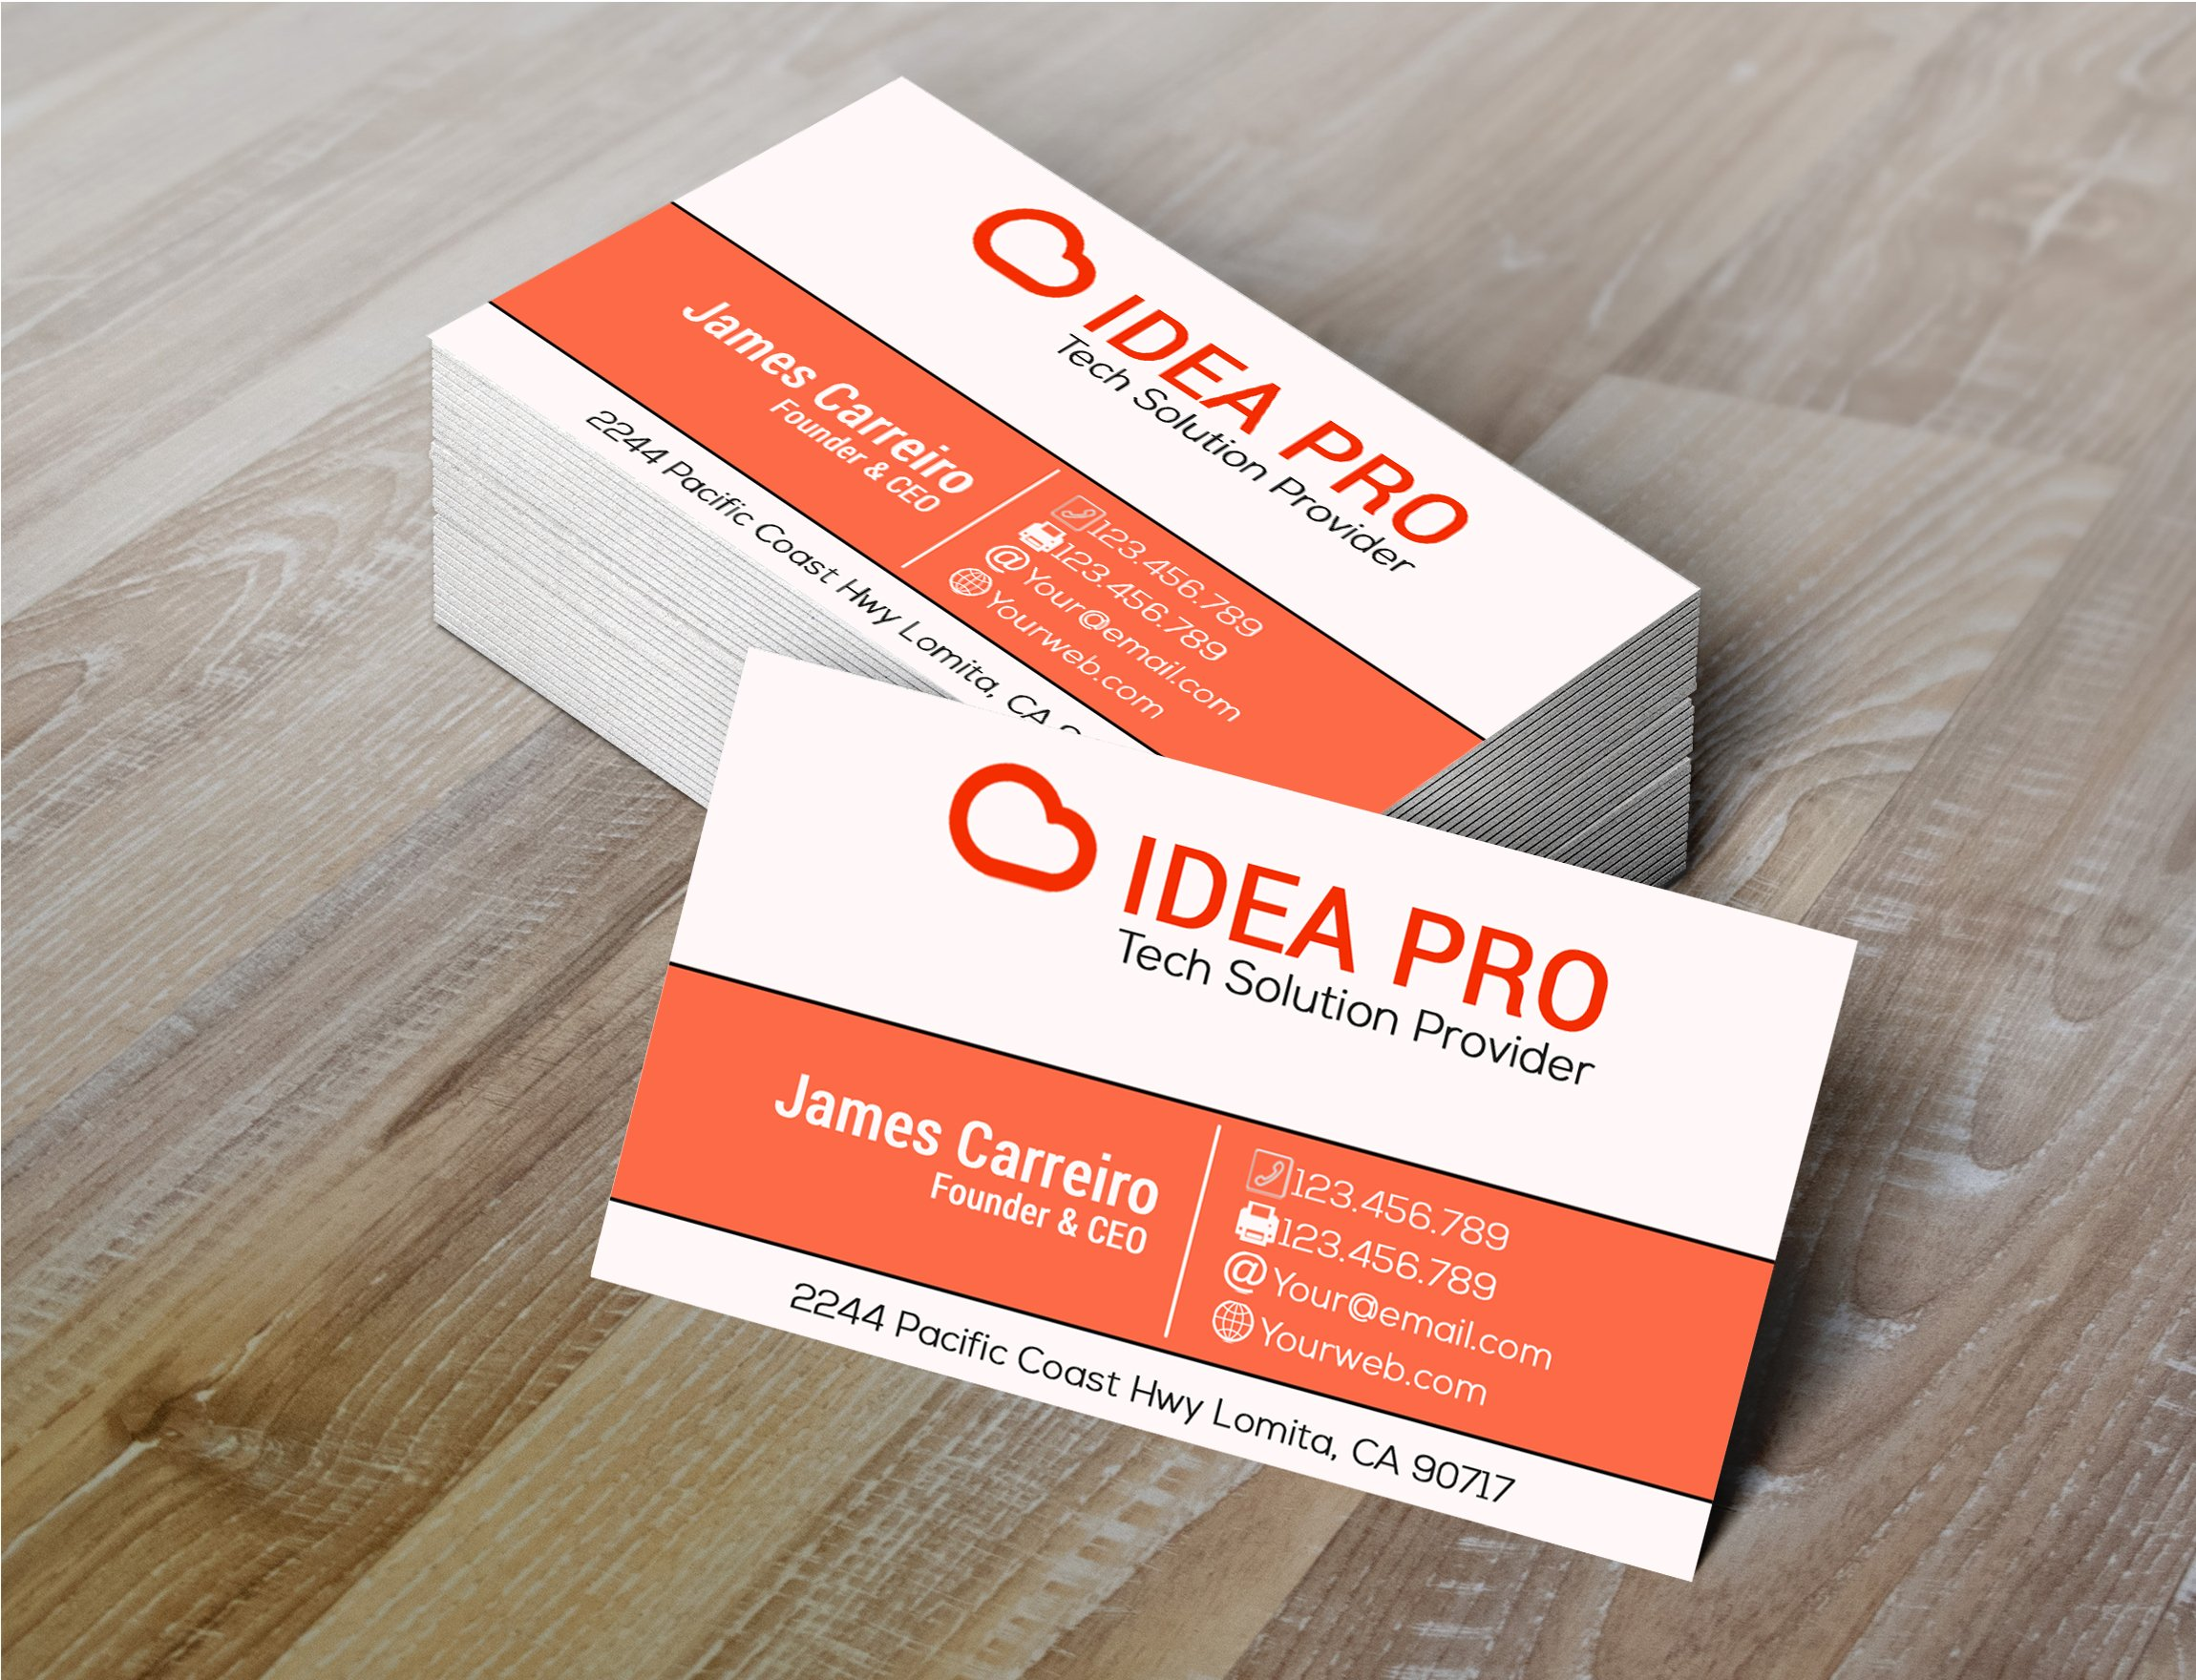 Idea Pro Business Card ~ Business Card Templates ~ Creative Market